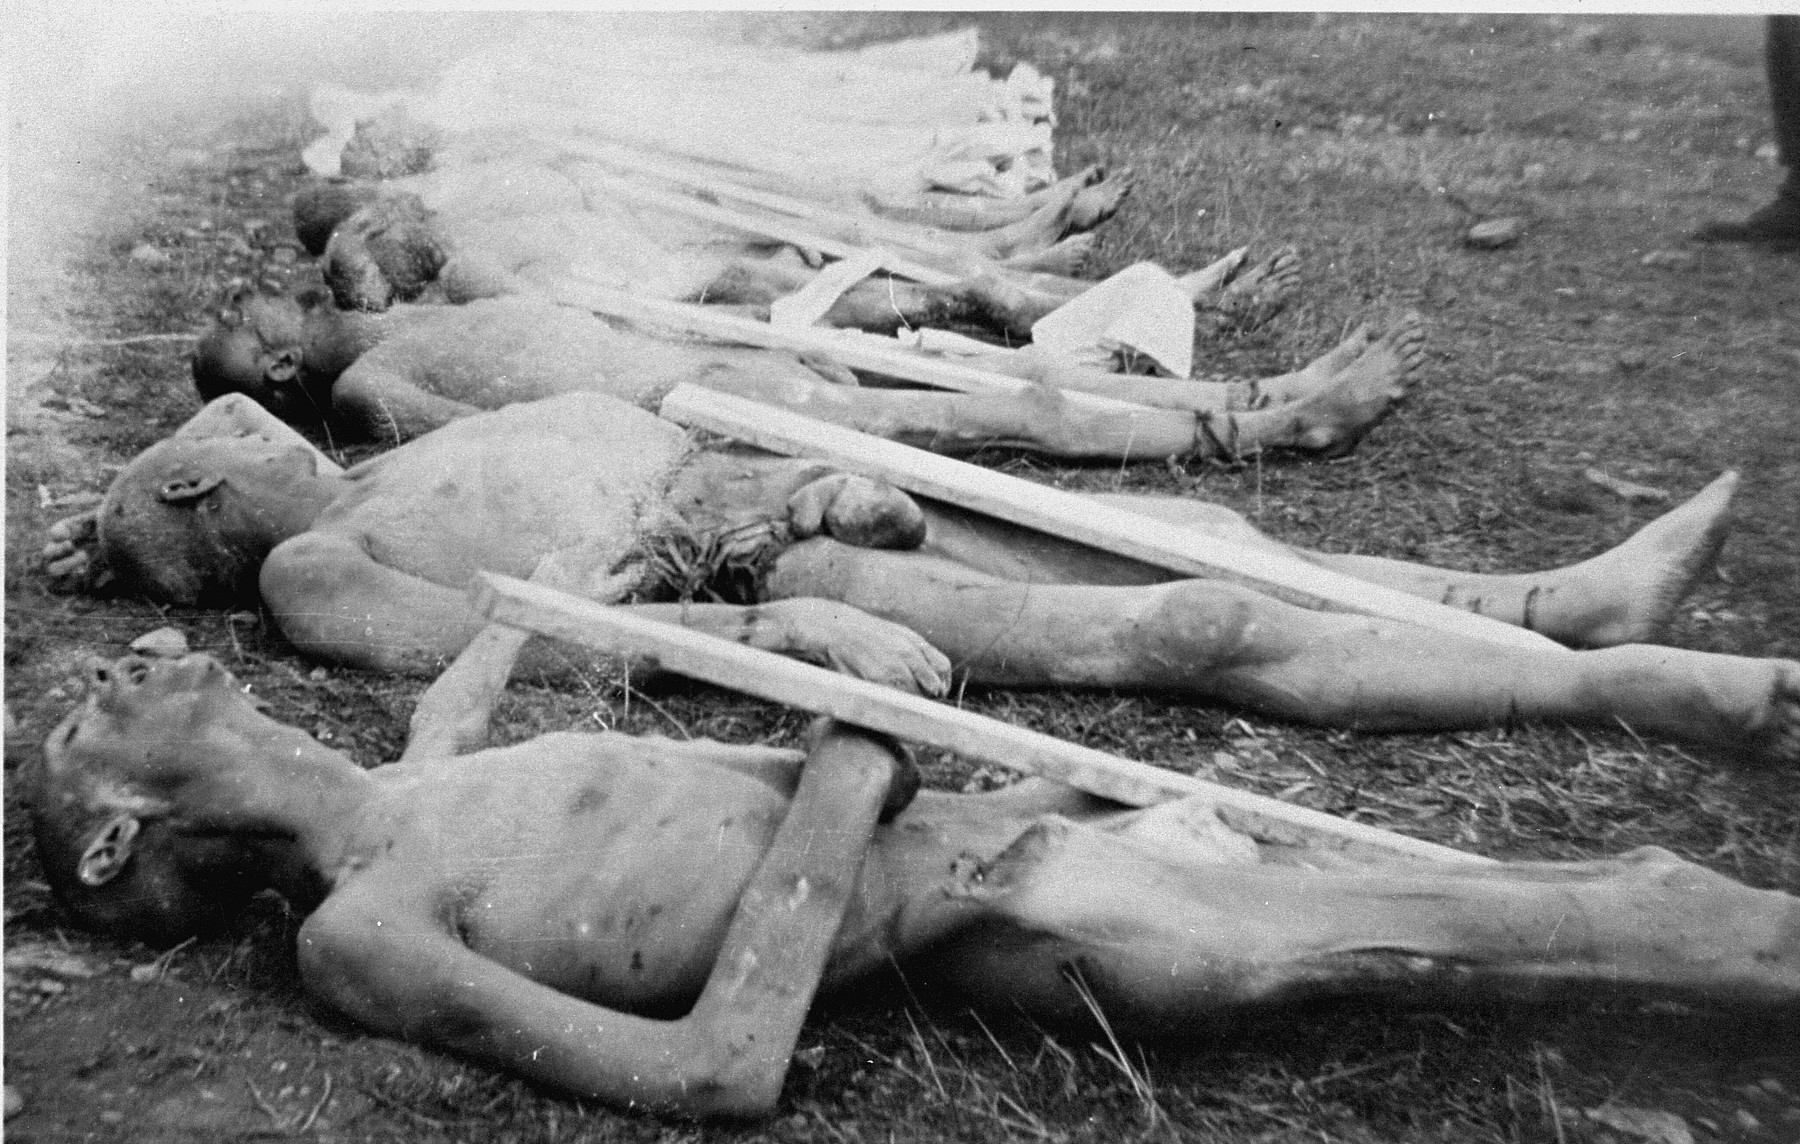 The corpses of prisoners killed in Ohrdruf awaiting burial.  Each corpse was assigned a numbered grave marker.